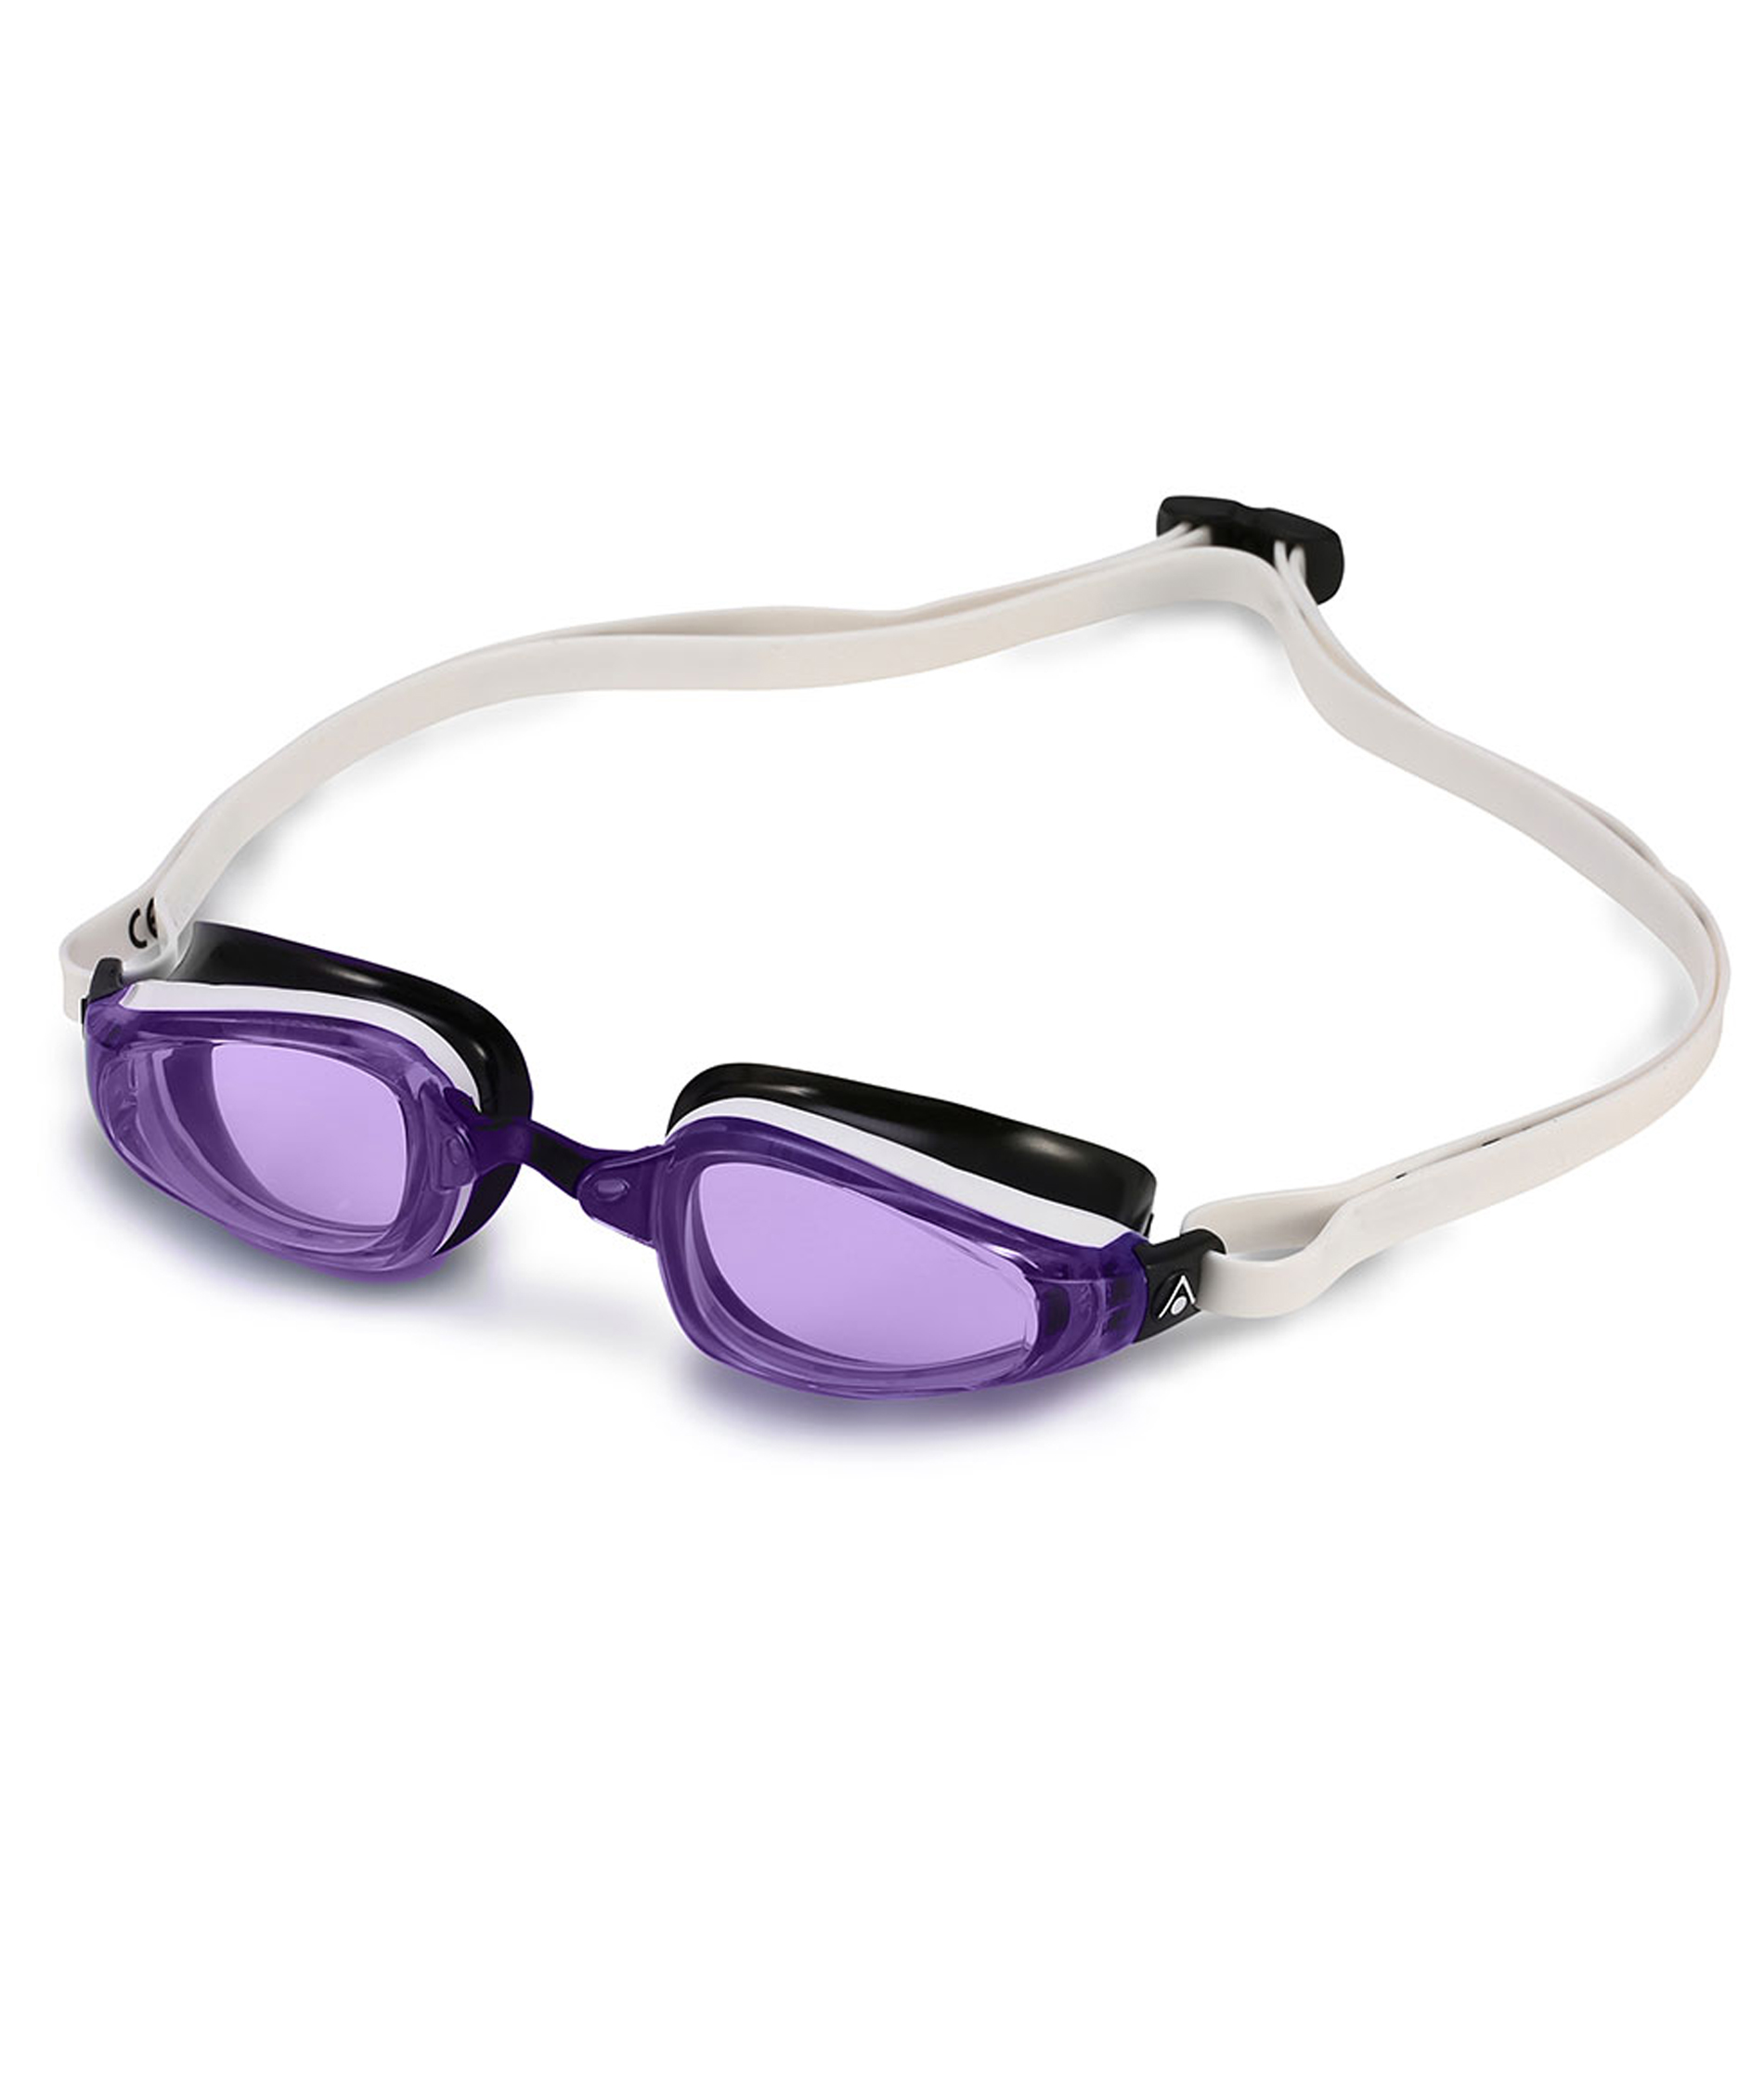 MP K180 Lady Goggle - Voilet/White/Black